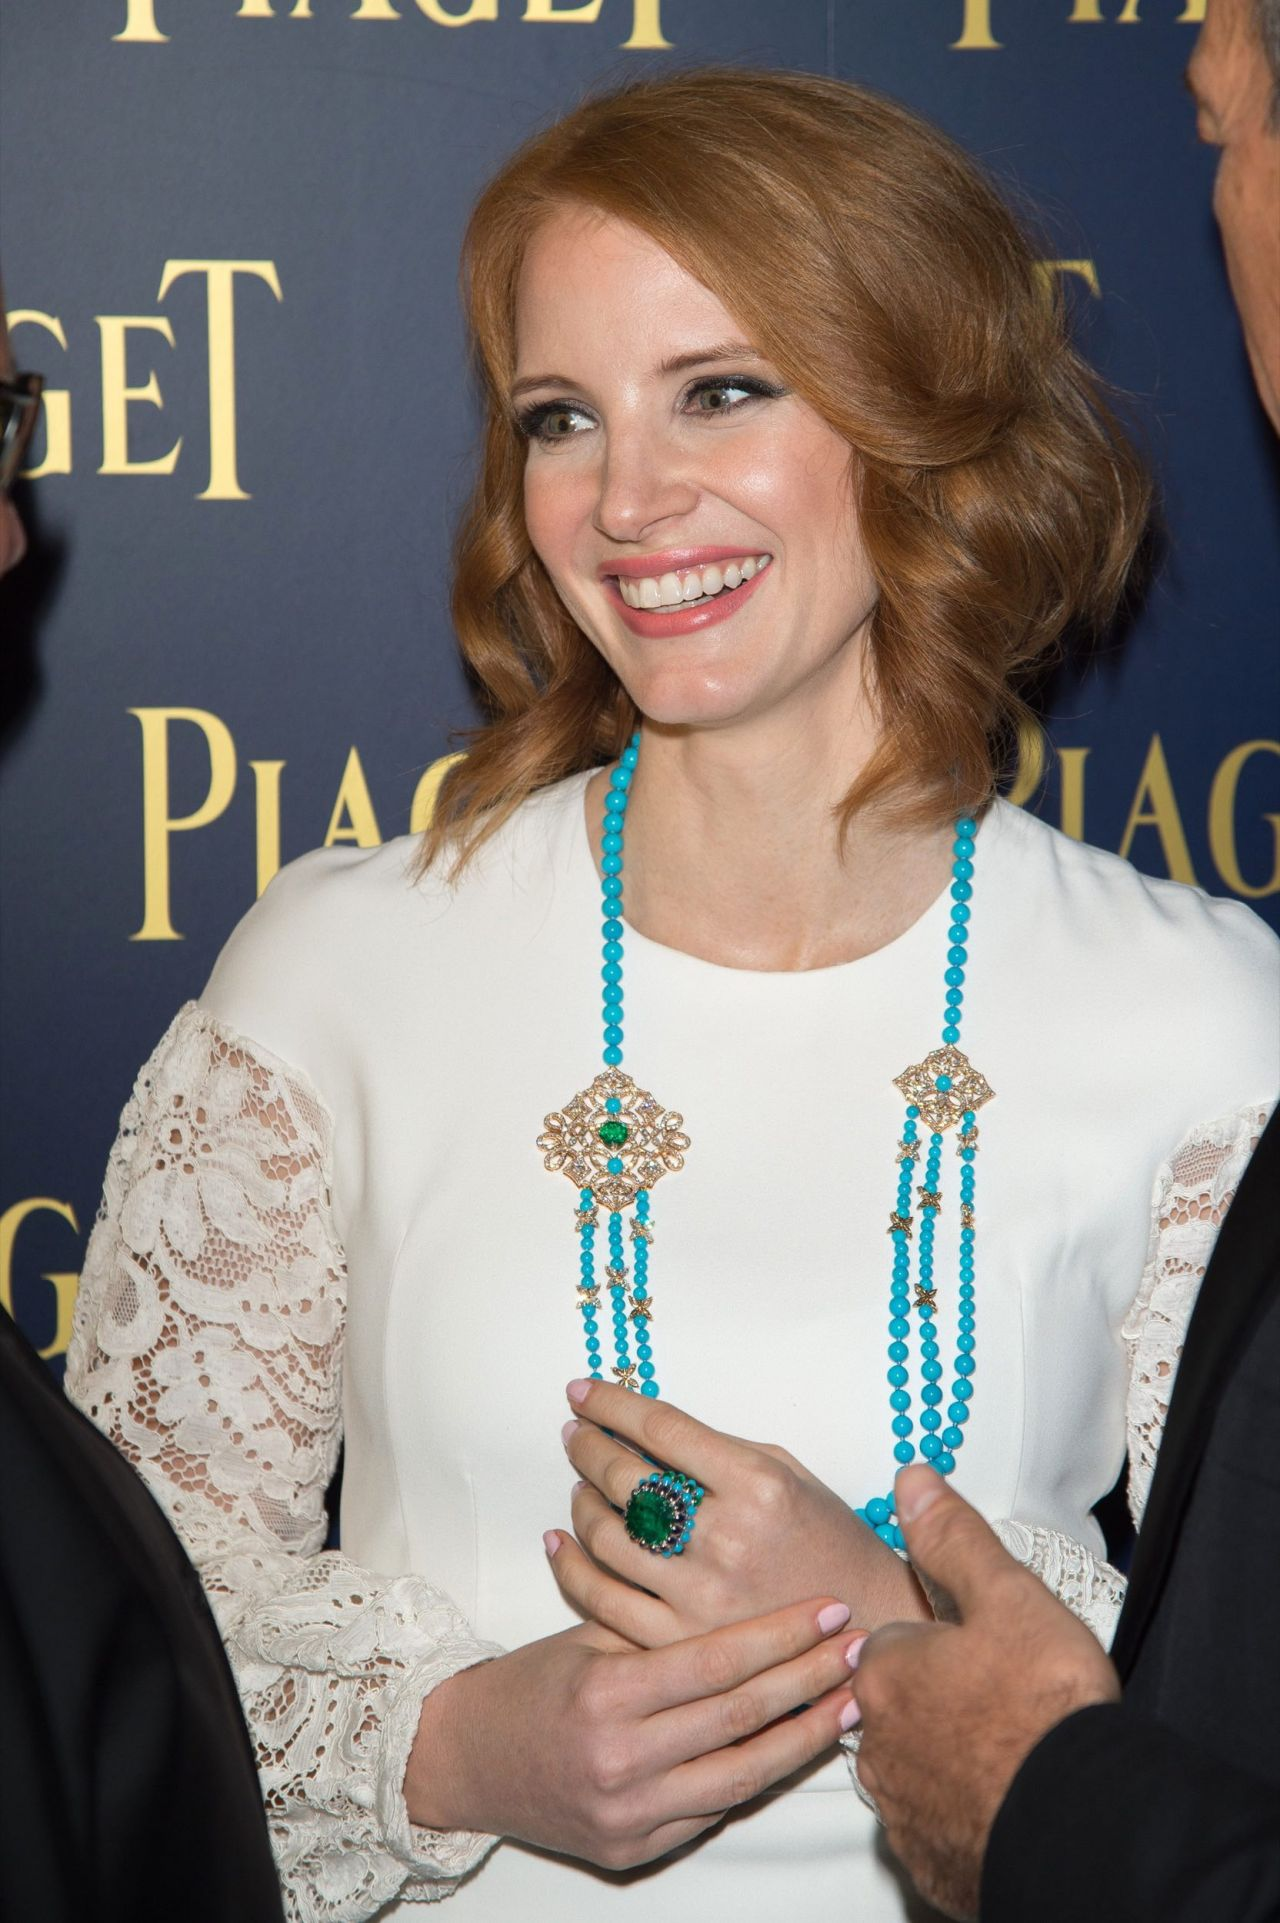 jessica-chastain-piaget-grand-opening-in-milan-september-2015_3